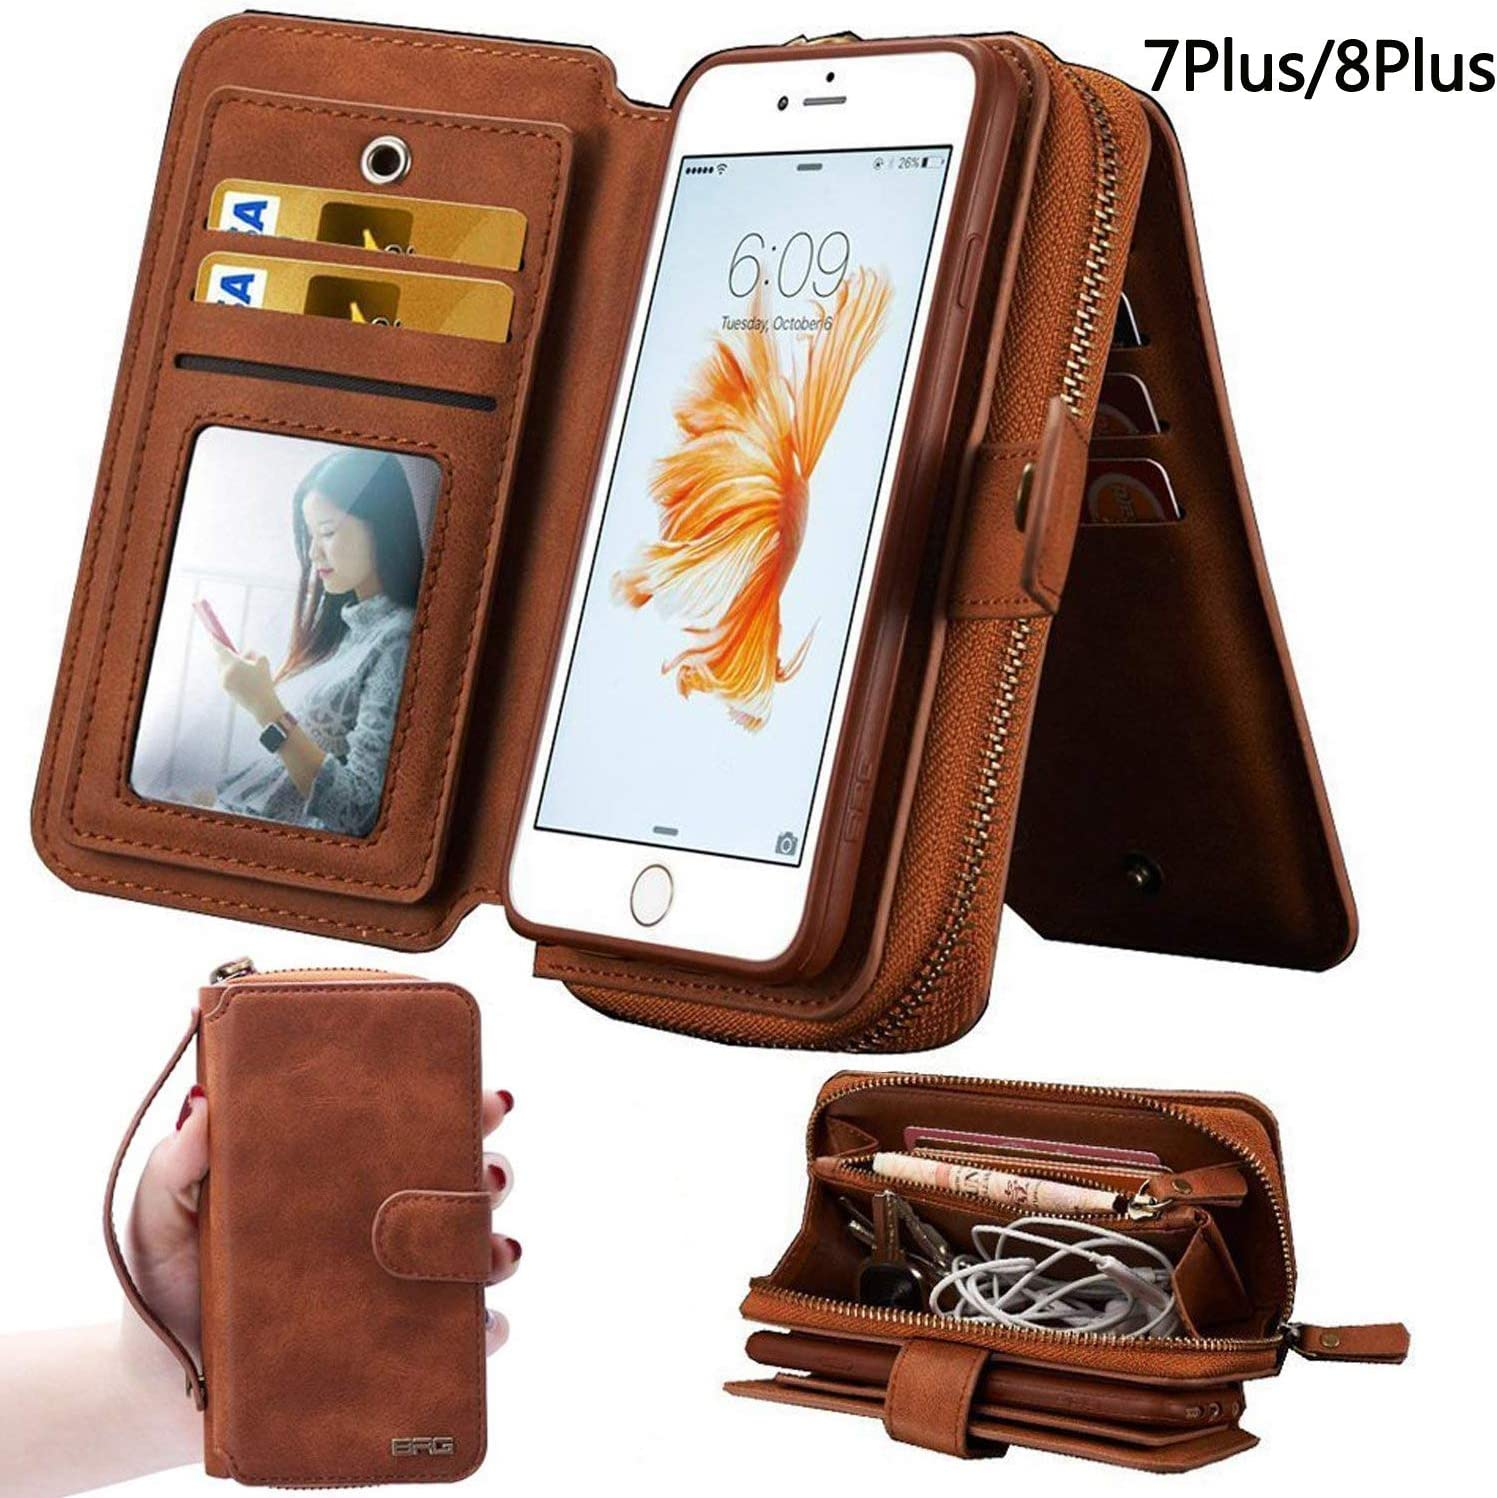 iPhone 7Plus/ 8Plus Women's Case,iPhone 7 Plus/8 Plus Wallet Case,Zipper Detachable Magnetic12 Card Slots Card Slots Money Pocket Clutch Cover Zipper Wallet Purse Case iPhone 7 Plus/8 Plus (Brown)